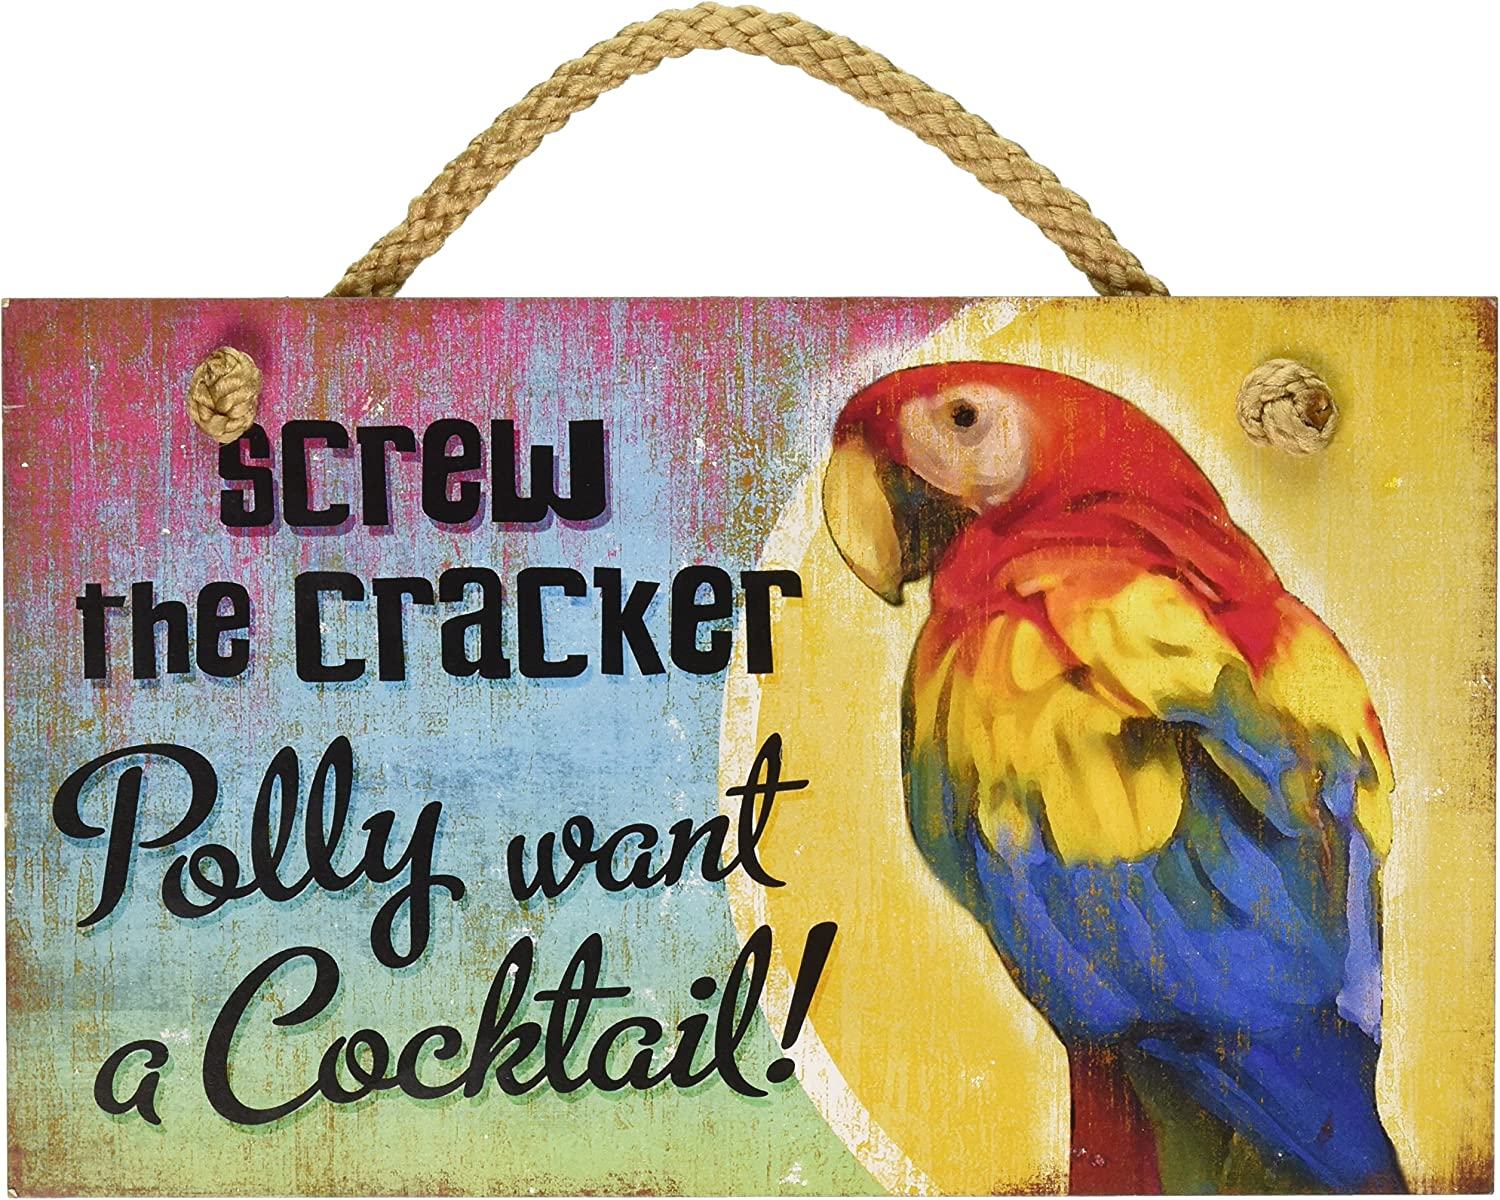 New Distressed Wood Tropical Decor Polly Want Cocktail Sign Beach Coastal Fun Plaque by Highland Graphics